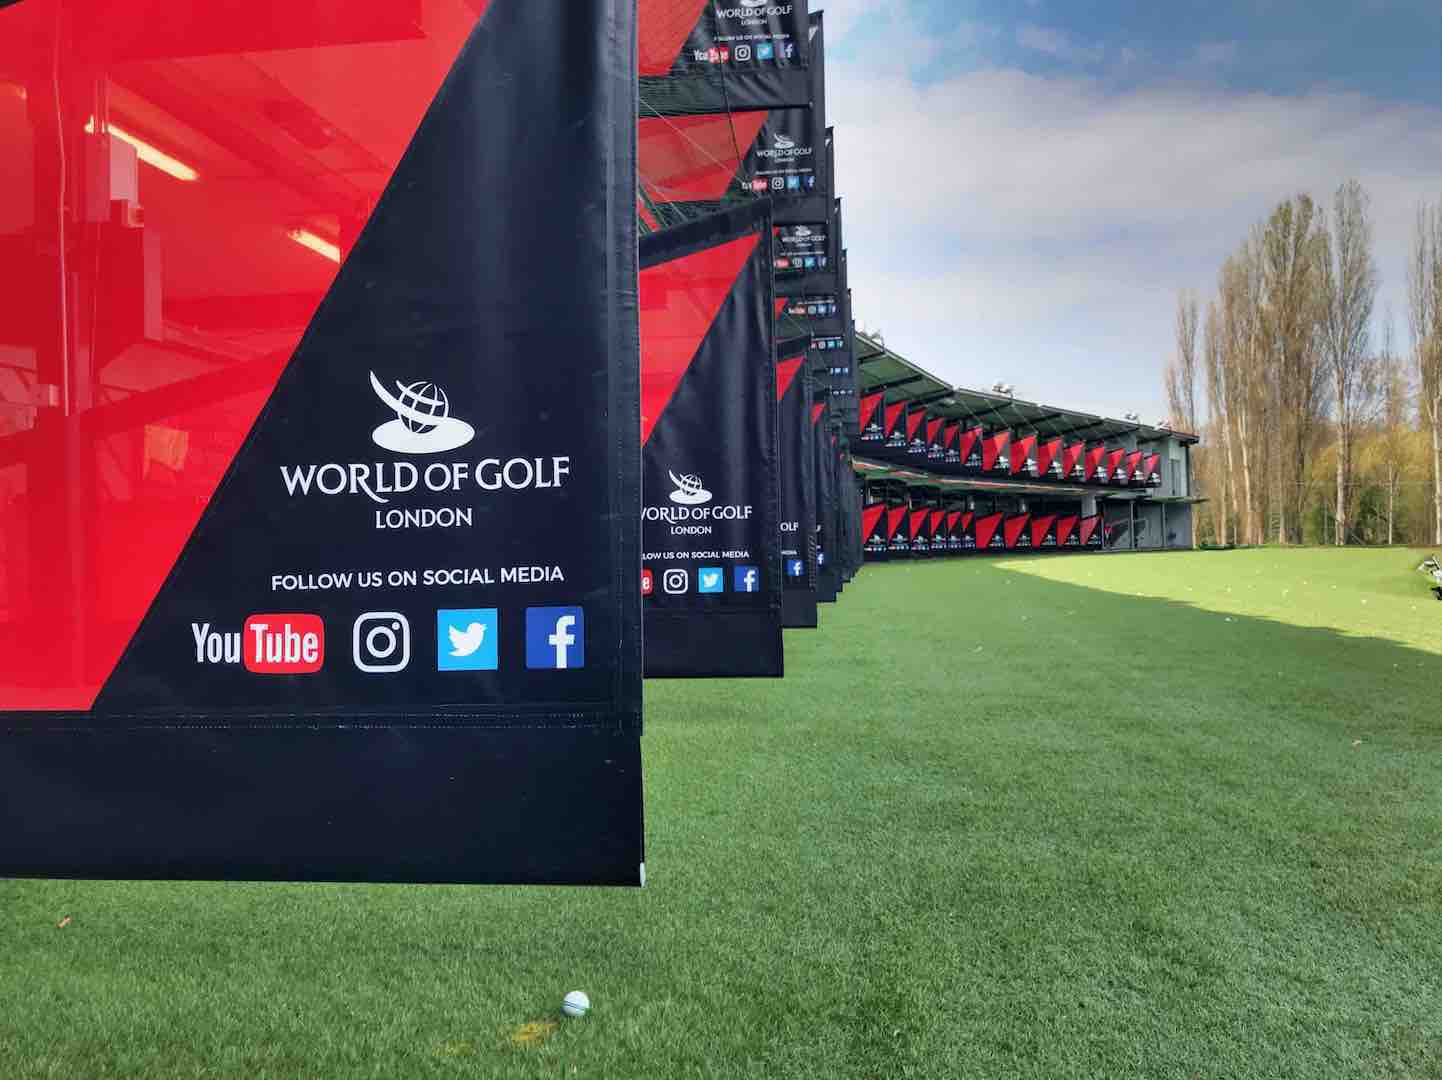 Business booming at World of Golf London